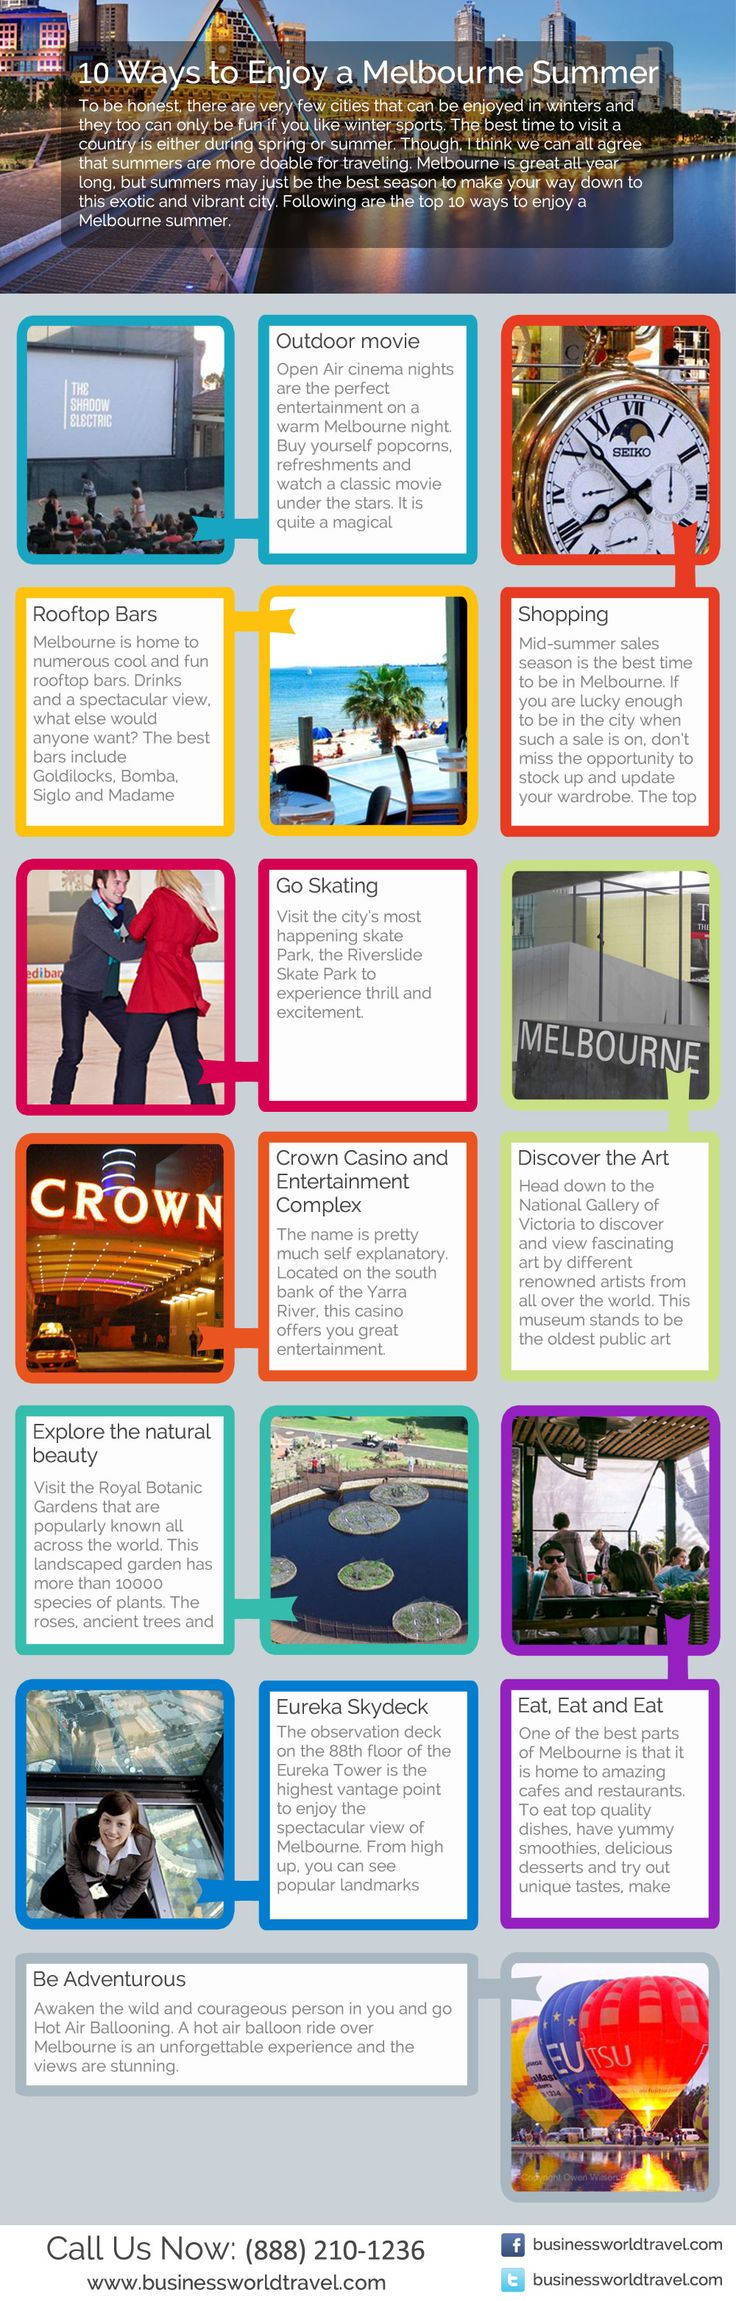 Melbourne one of the best place for the tourist and vacations point of view. You can plan your travel to Melbourne with your friends and family. Here are the 10 ways about how to enjoy summer in Melbourne. Resource: http://planyourairtravel.blogspot.com/2014/09/top-10-ways-to-enjoy-summer-in-melbourne.html #Melbourne  #MelbourneSummer